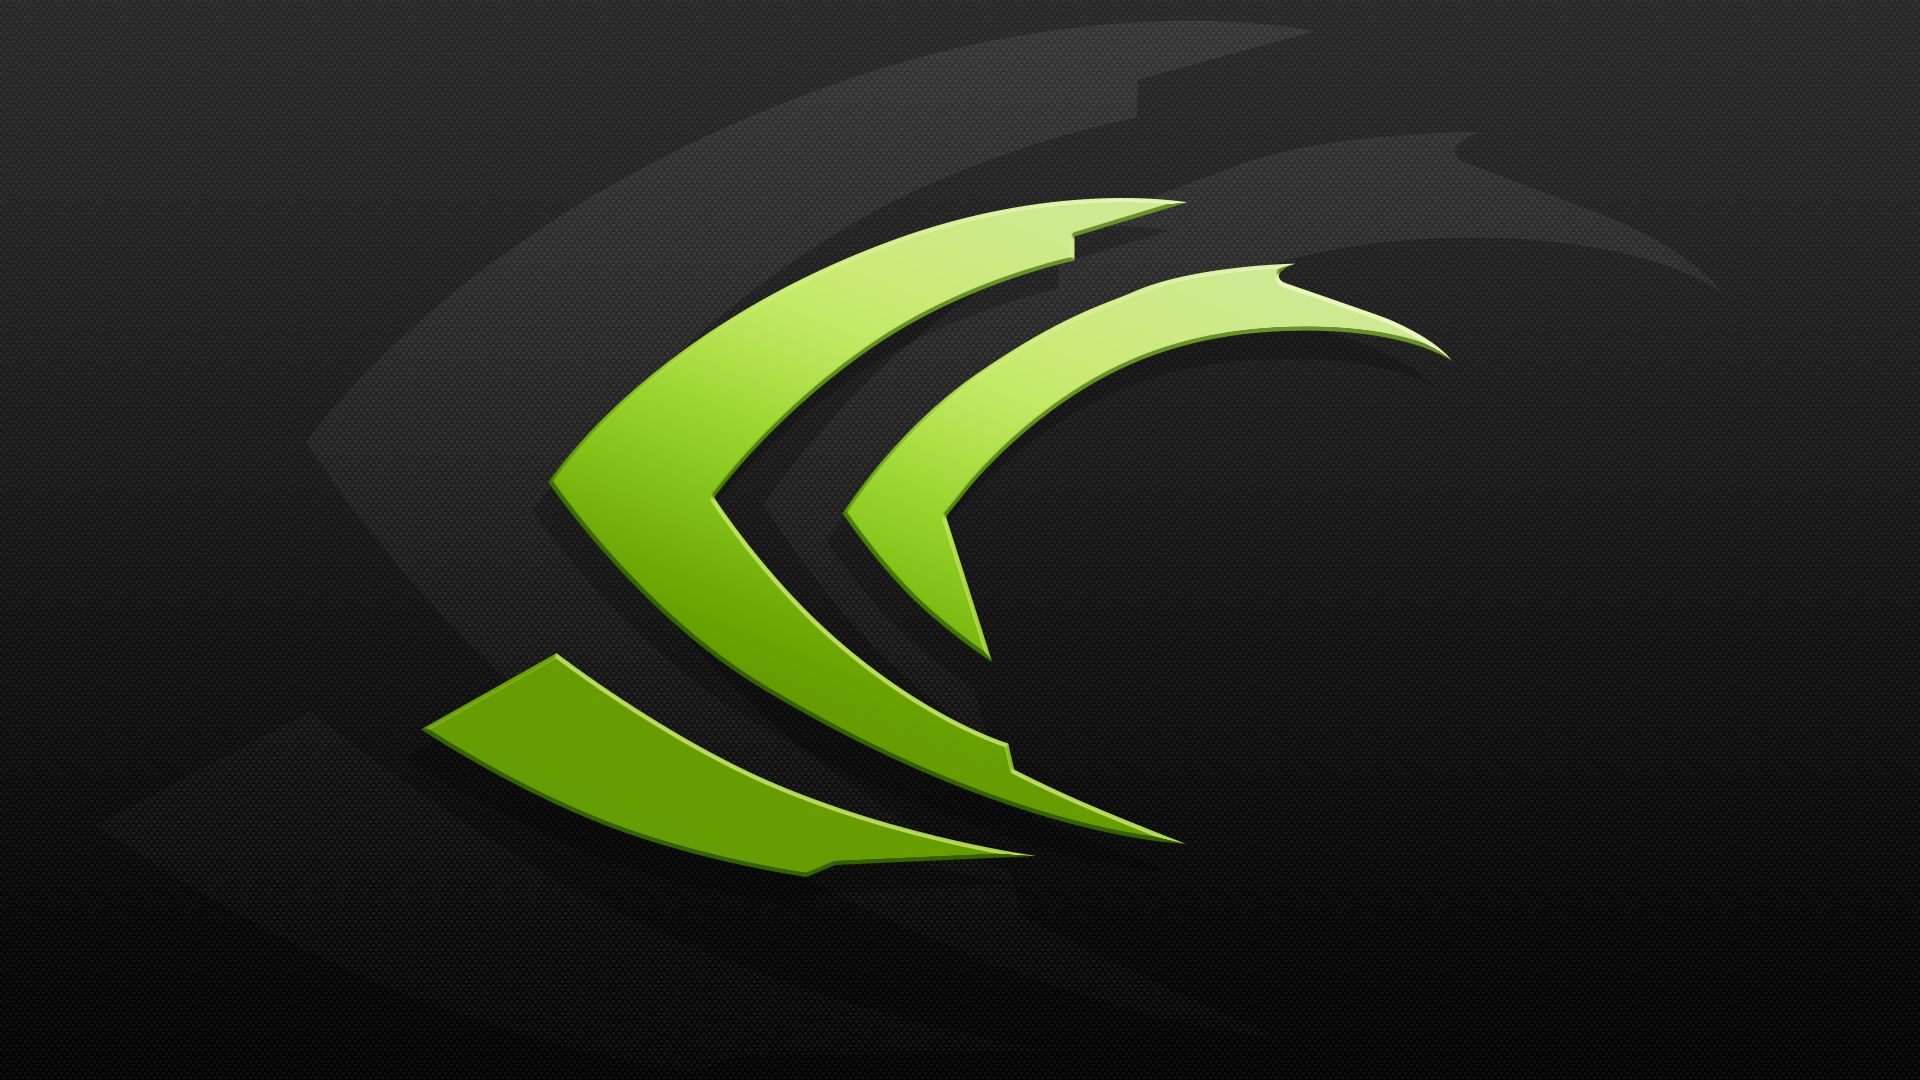 Nvidia wallpapers pictures images for Sfondi 1920x1080